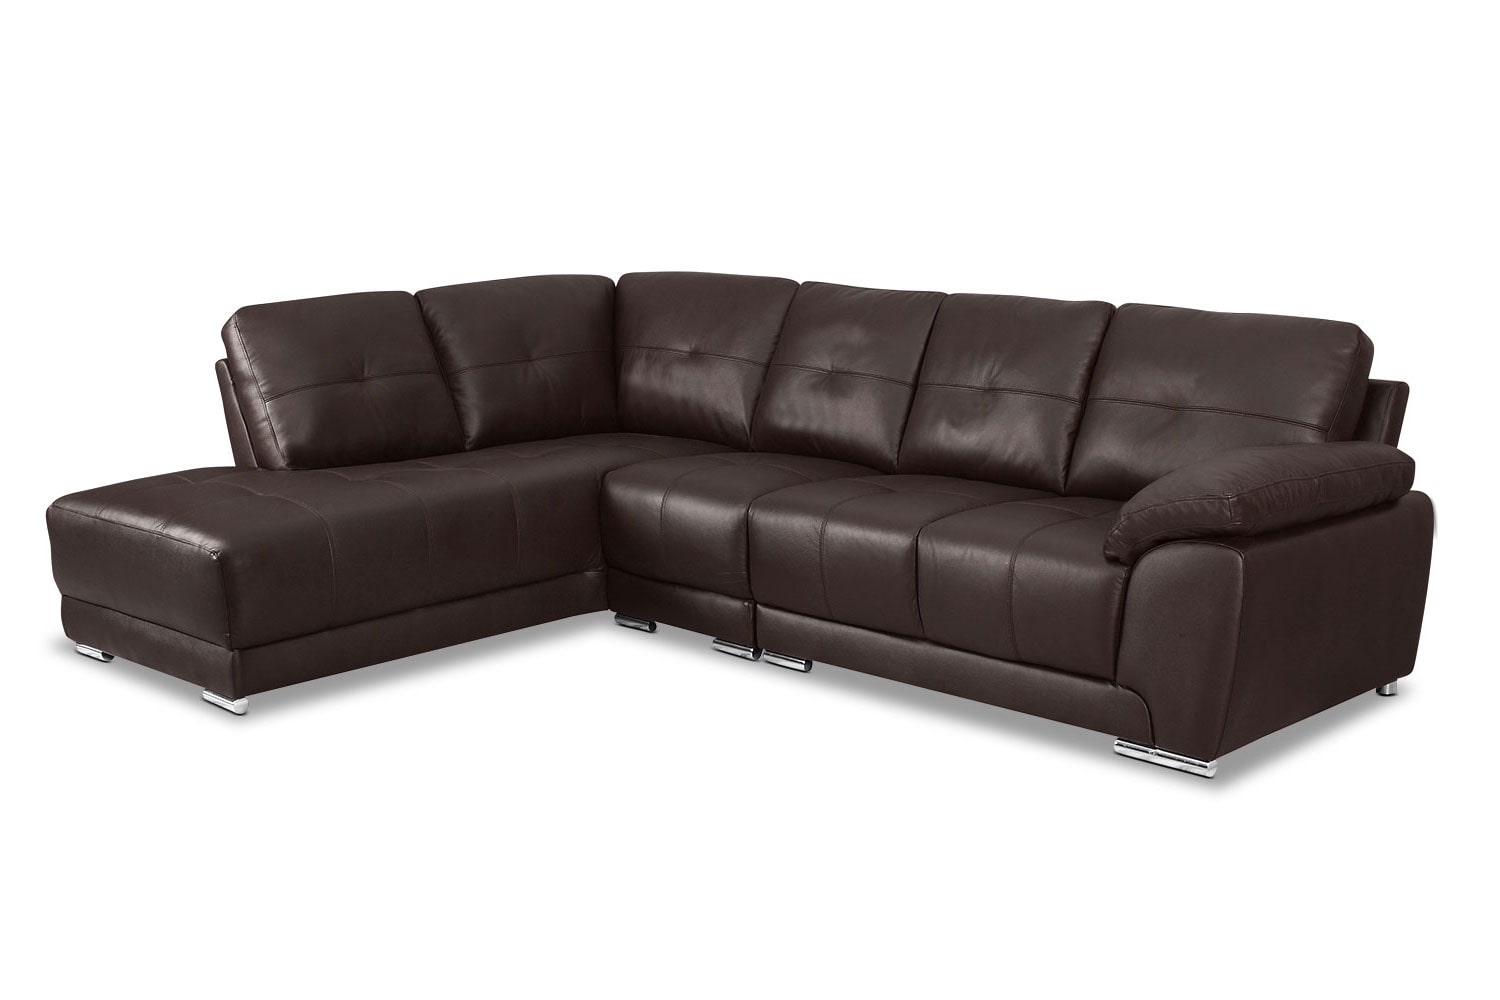 3 piece leather sectional sofa with chaise barcelona sofascore basketball rothwell left facing brown